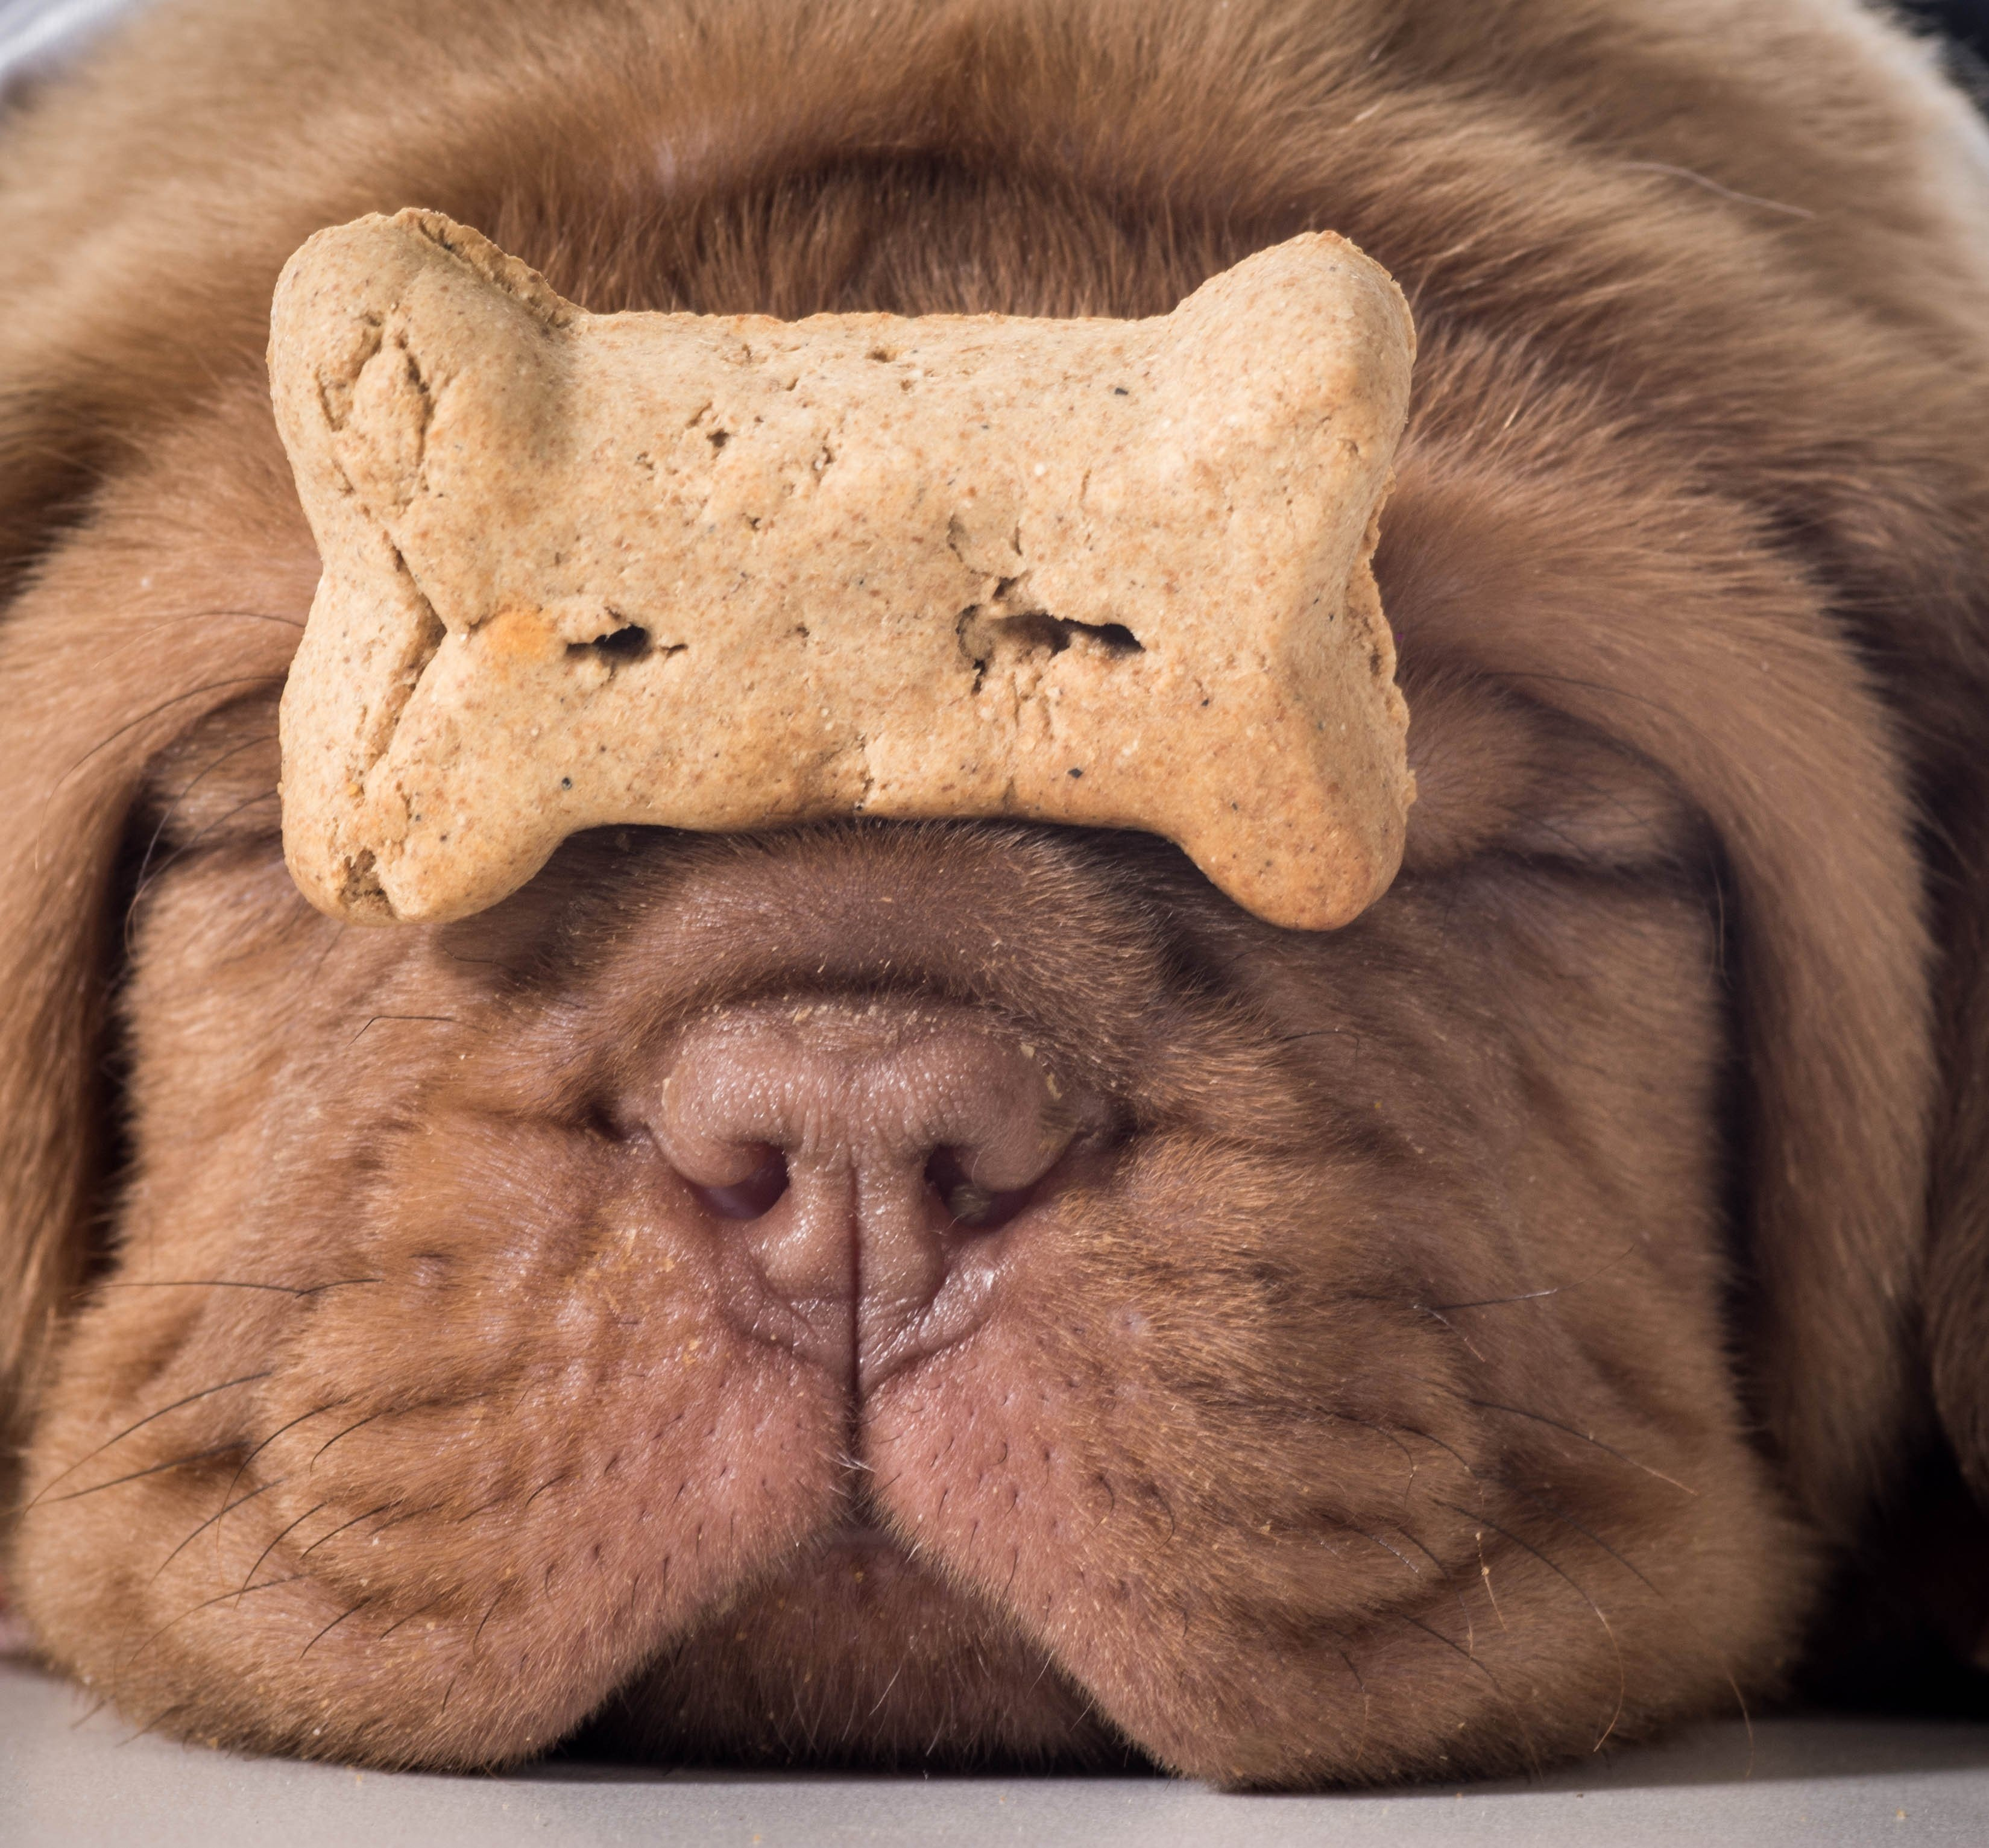 bigstock-dog-with-a-bone--dogue-de-bor-64612246